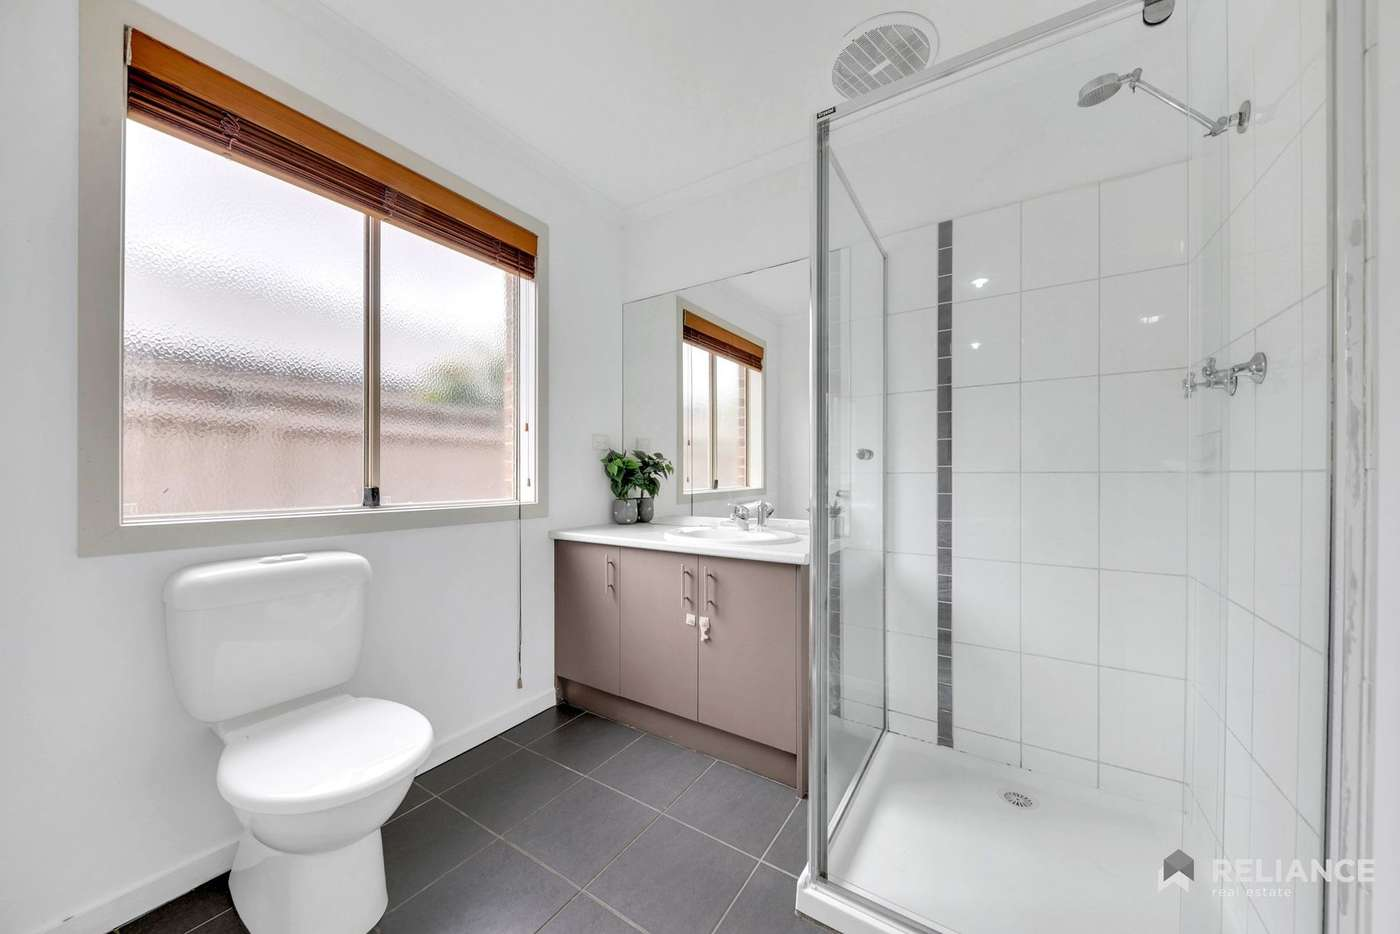 Fifth view of Homely house listing, 56 Mount Way, Caroline Springs VIC 3023